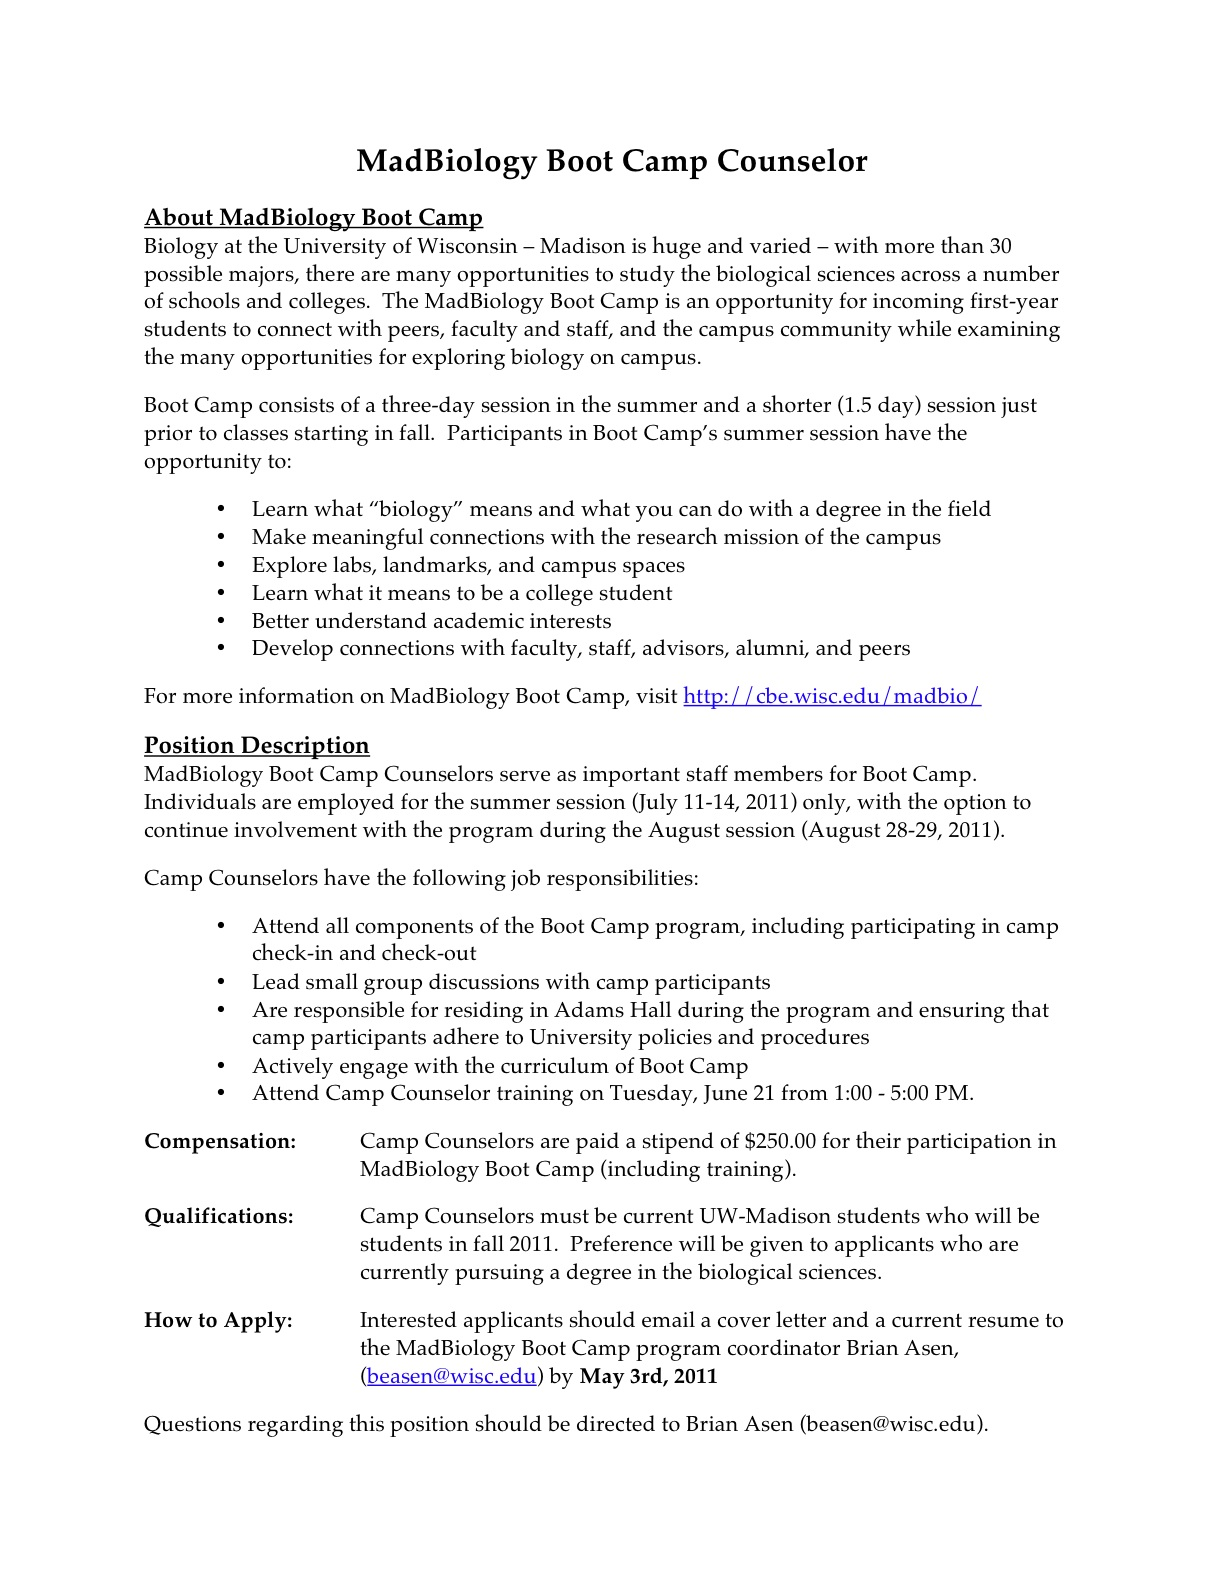 Summer day camp counselor resume sample – Camp Counselor Job Description